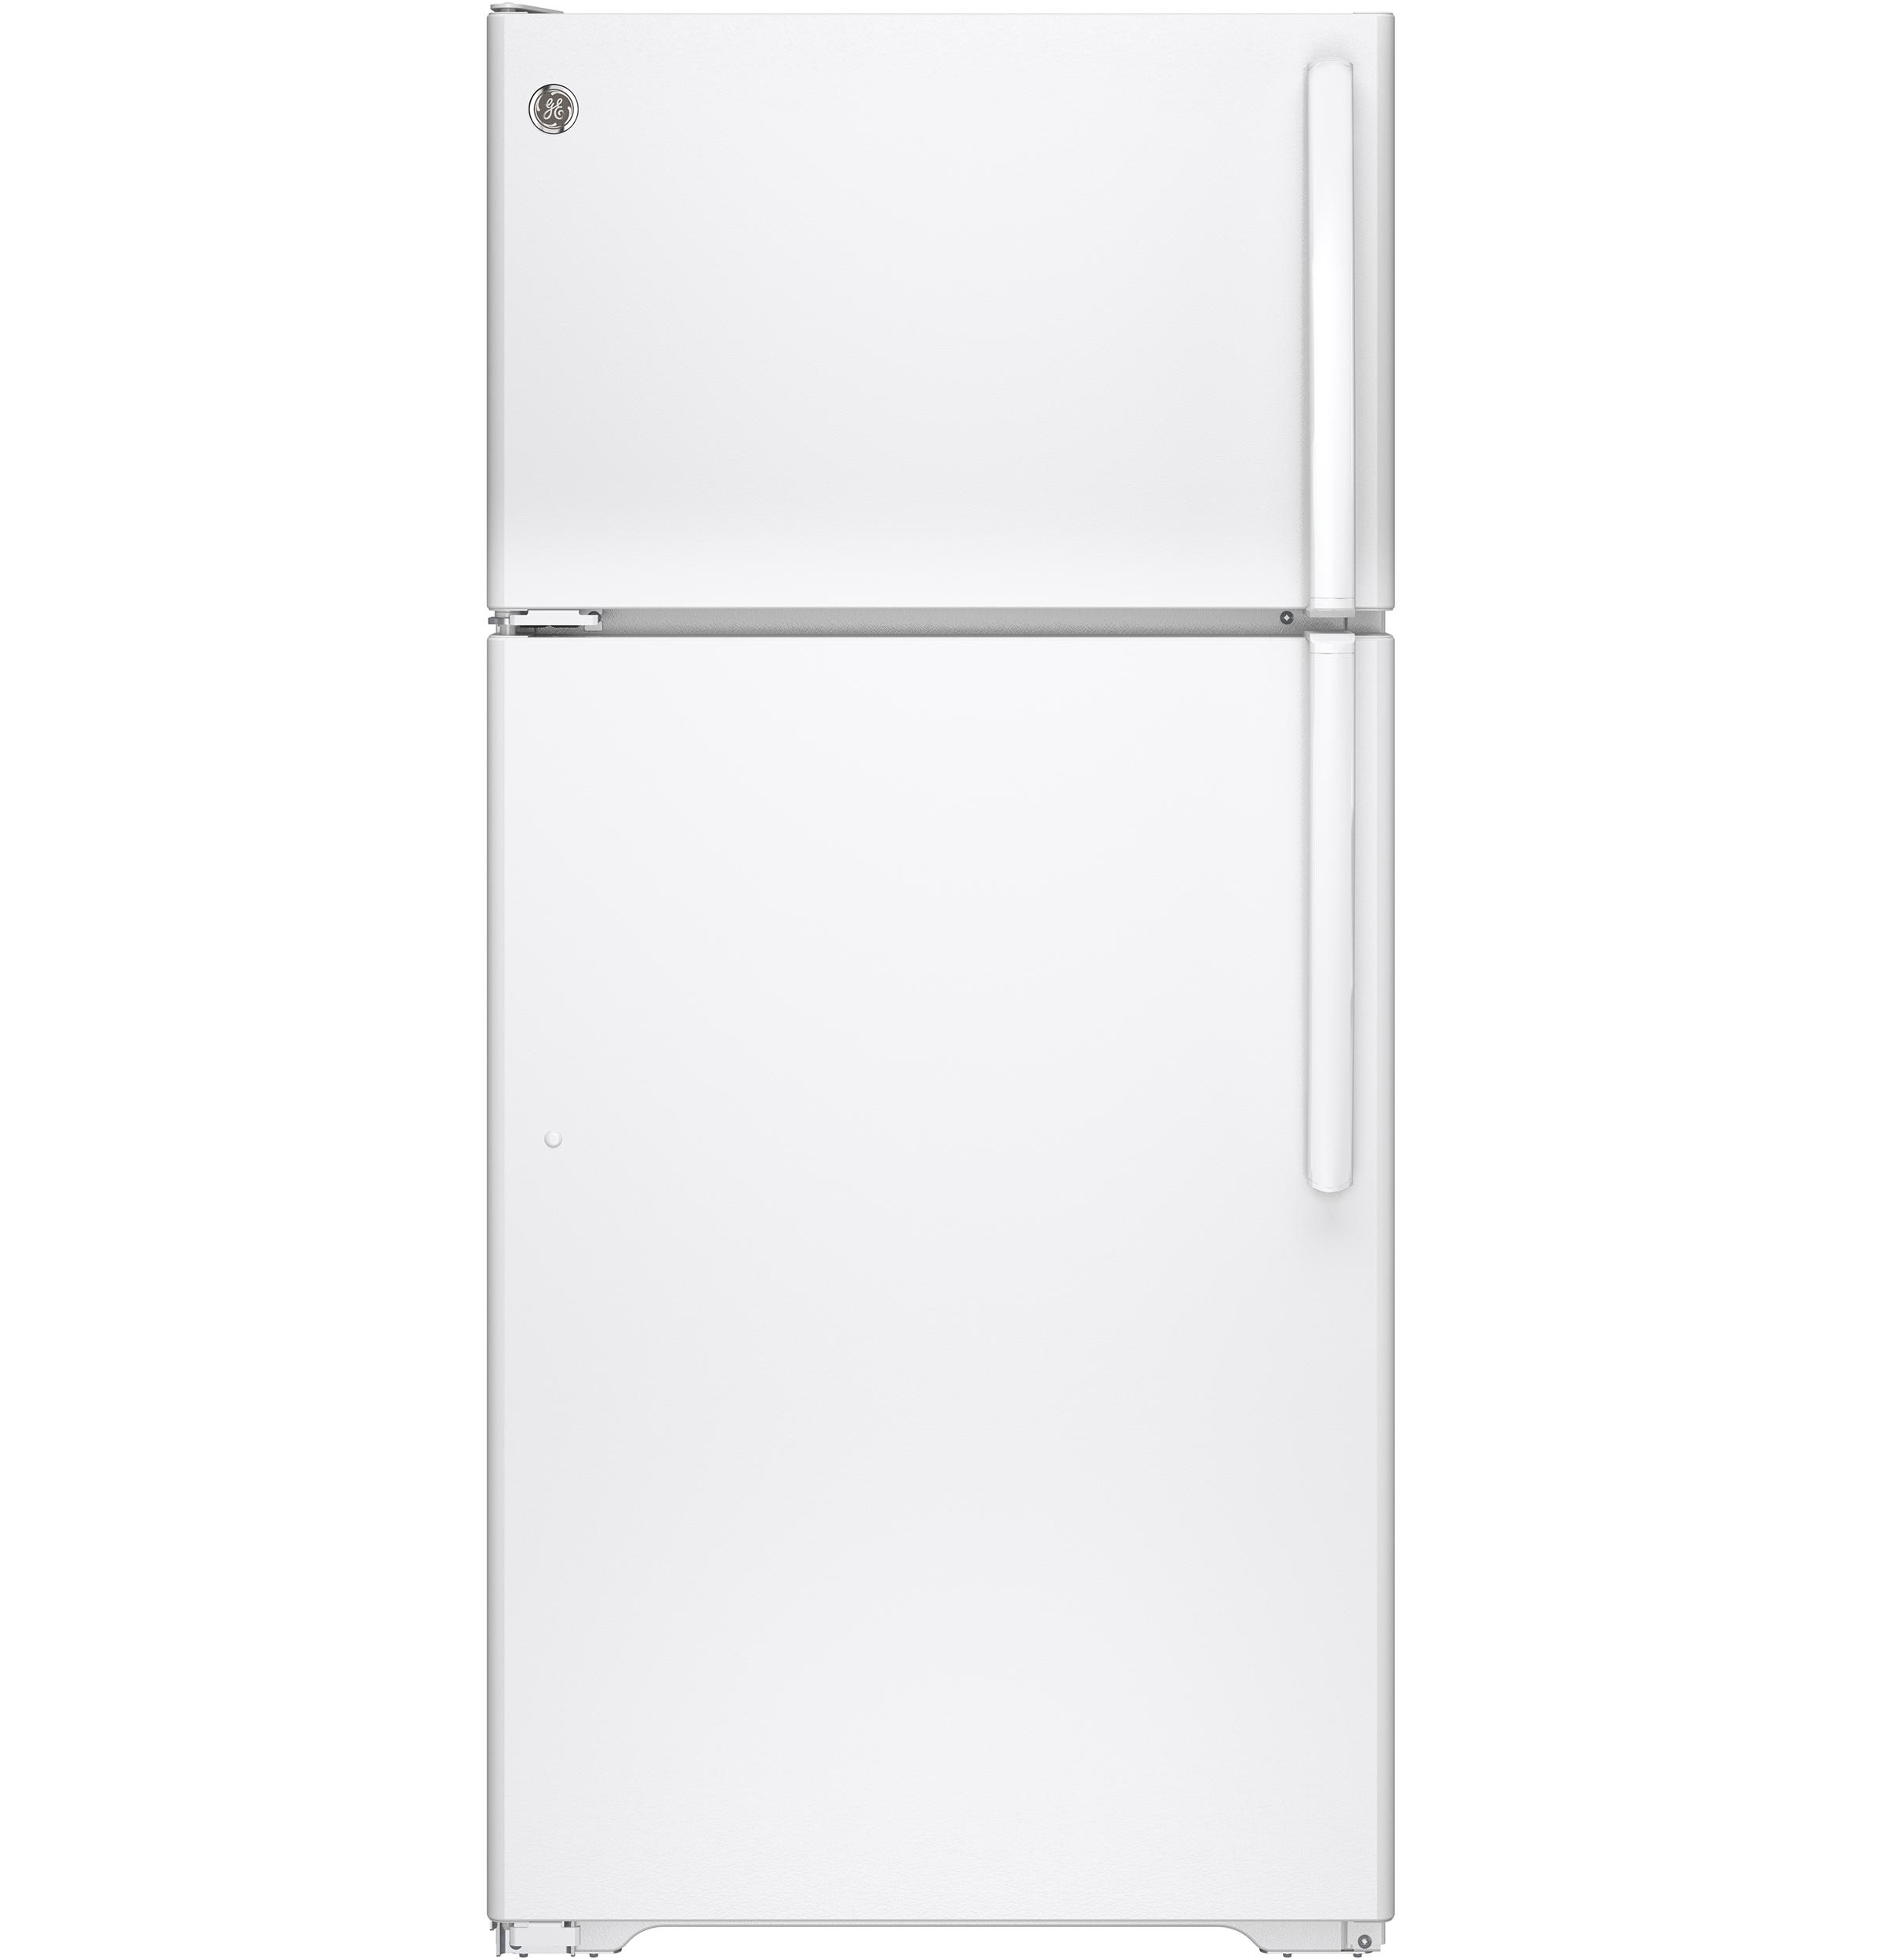 GEEnergy Star® 14.6 Cu. Ft. Top-Freezer Refrigerator